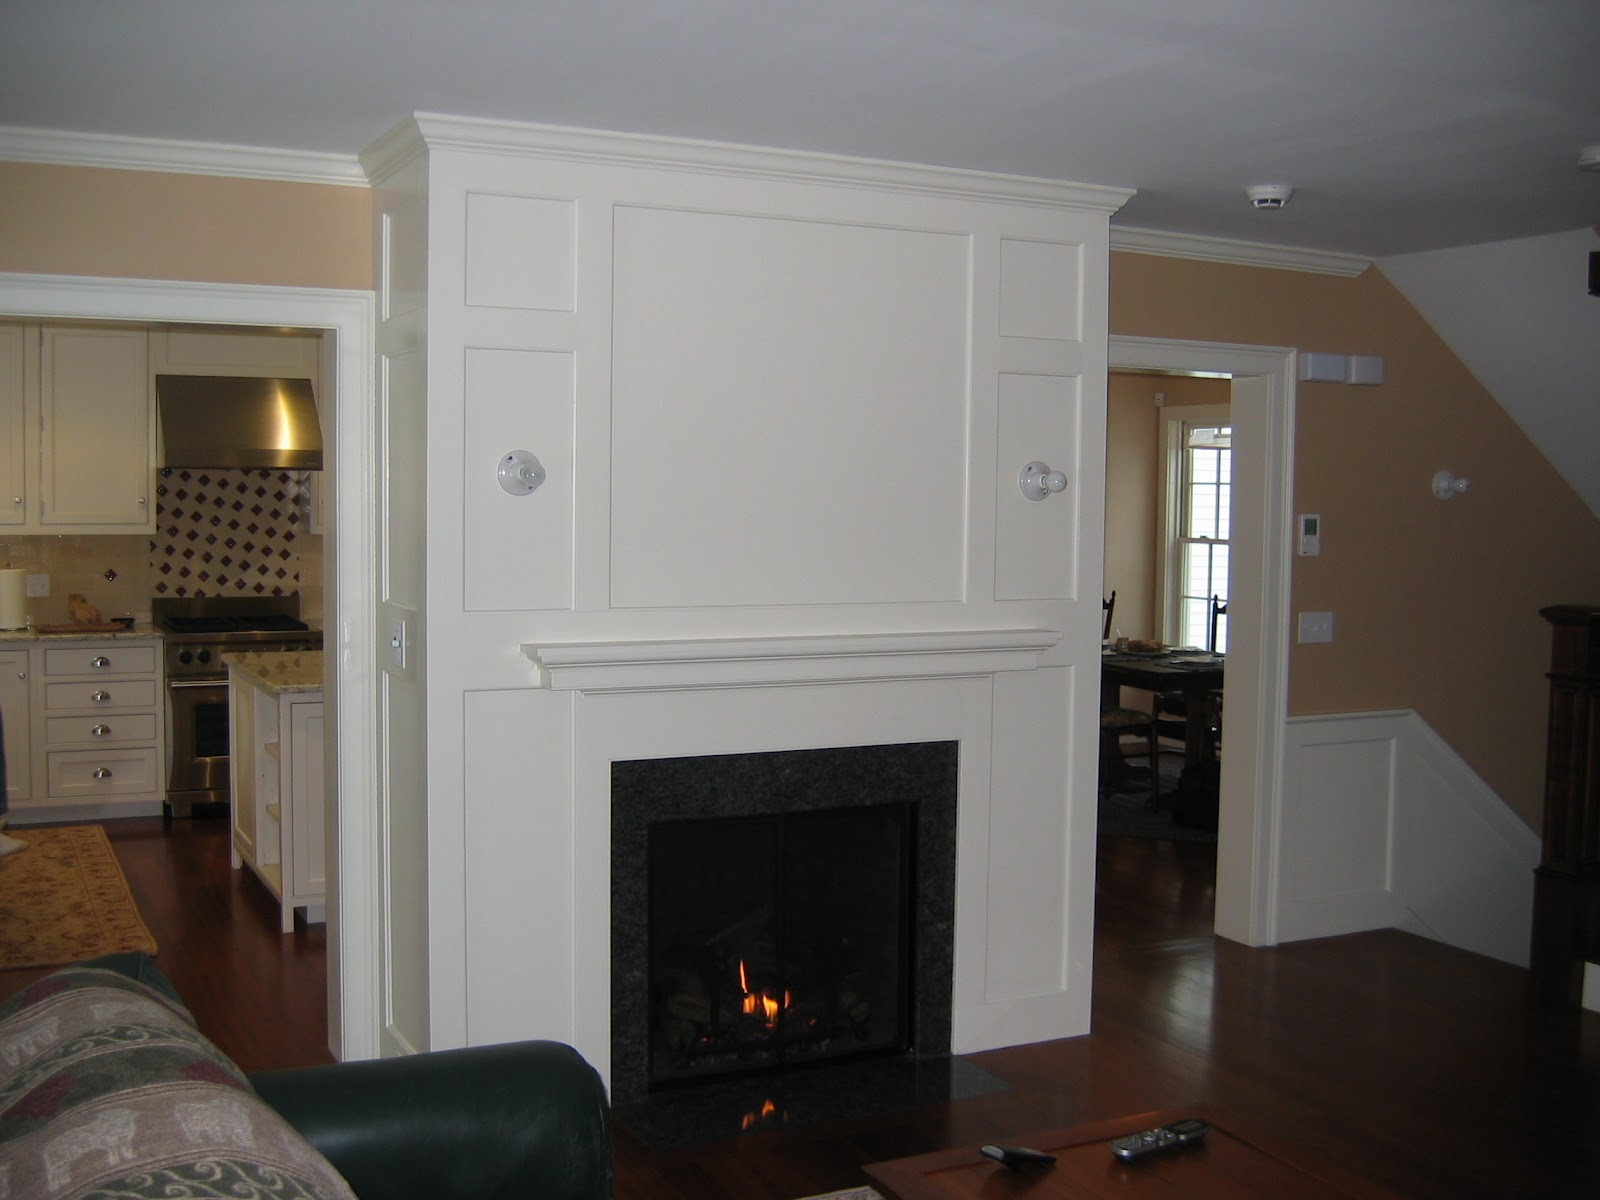 condon and fox project pages amherst village fireplace and paneling